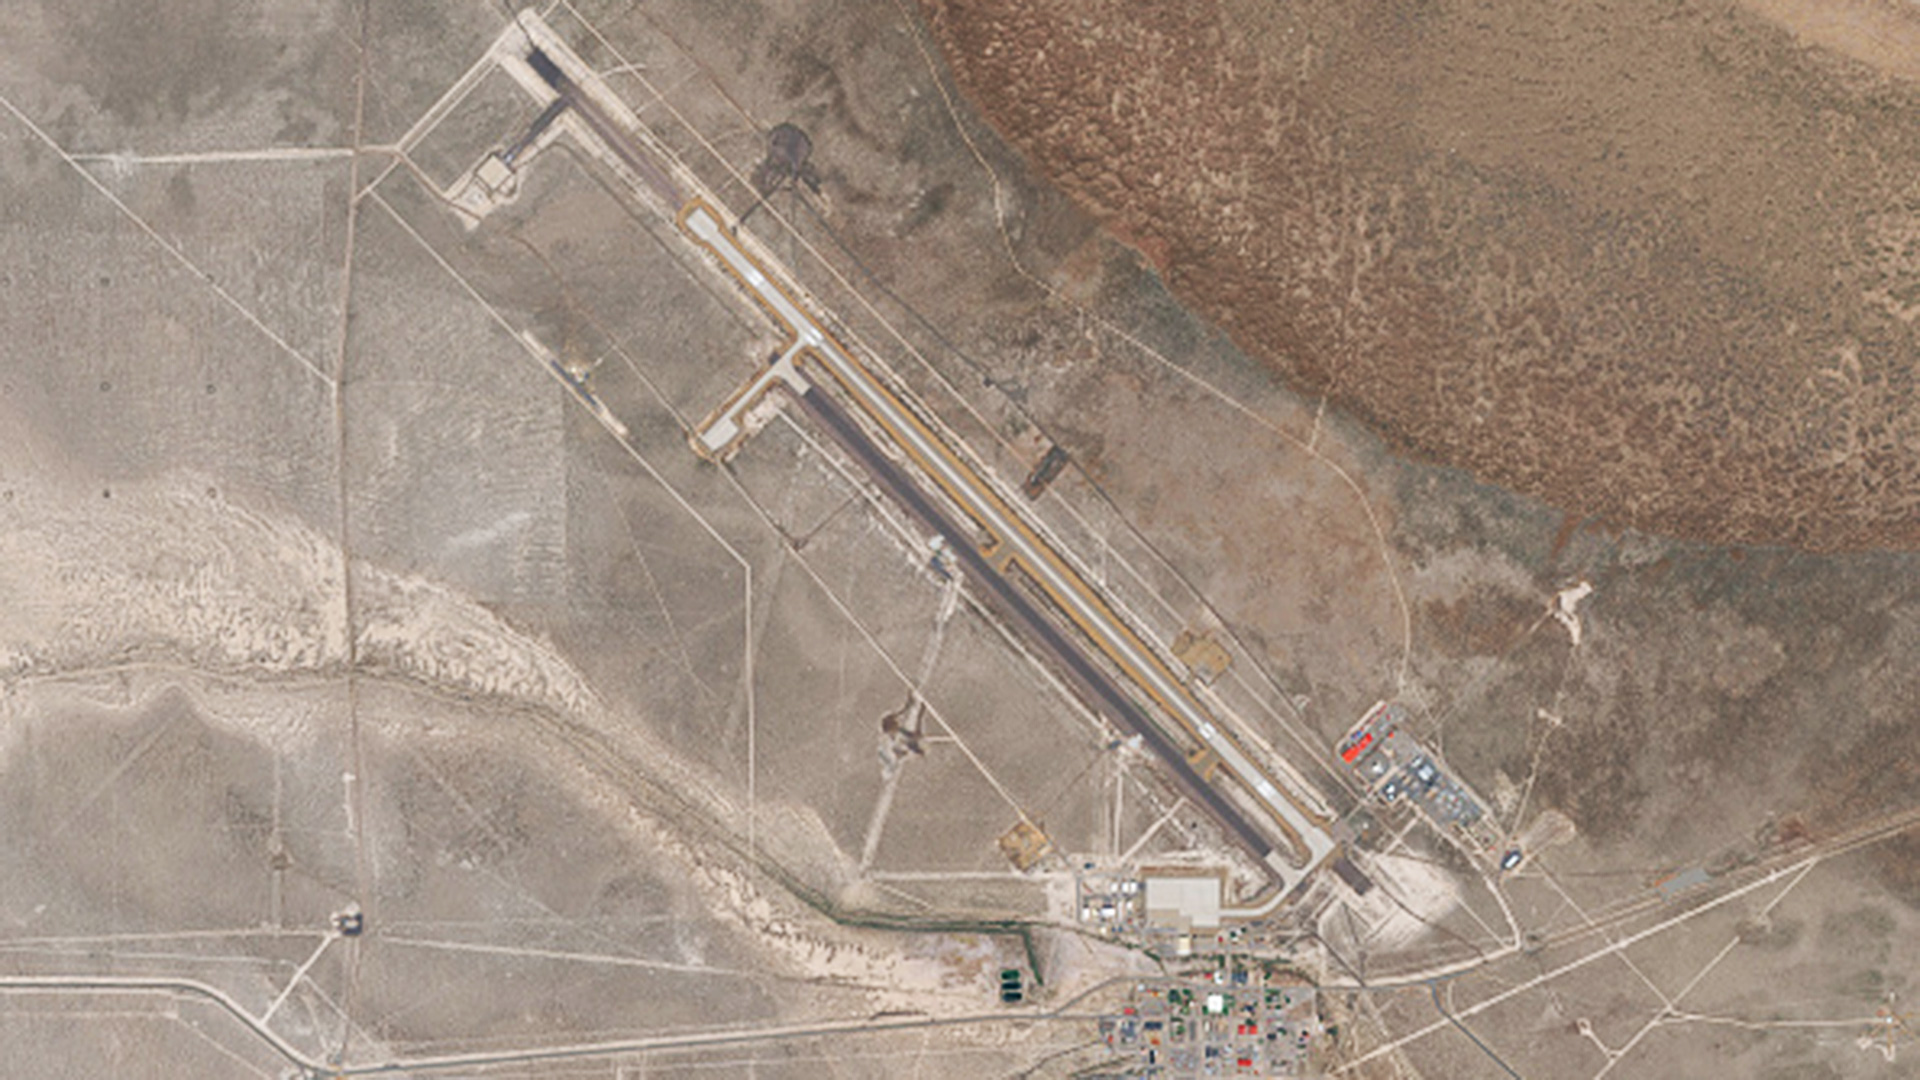 A satellite image of the Michael Army Airfield at the Dugway Proving Grounds in Utah.